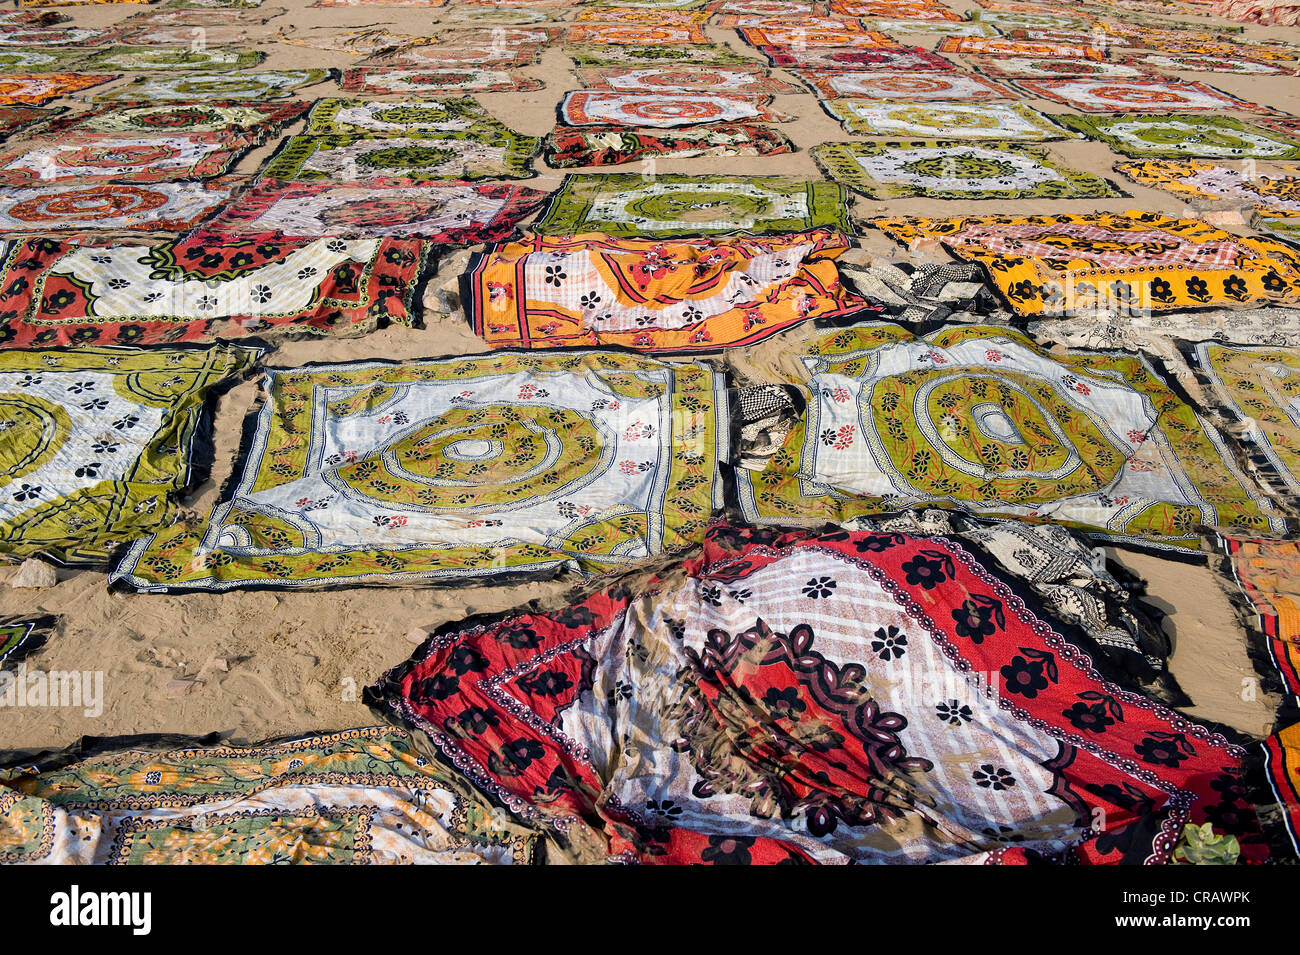 Printed and dyed fabrics, Sanganer dyeing centre near Jaipur, Rajasthan, India, Asia - Stock Image